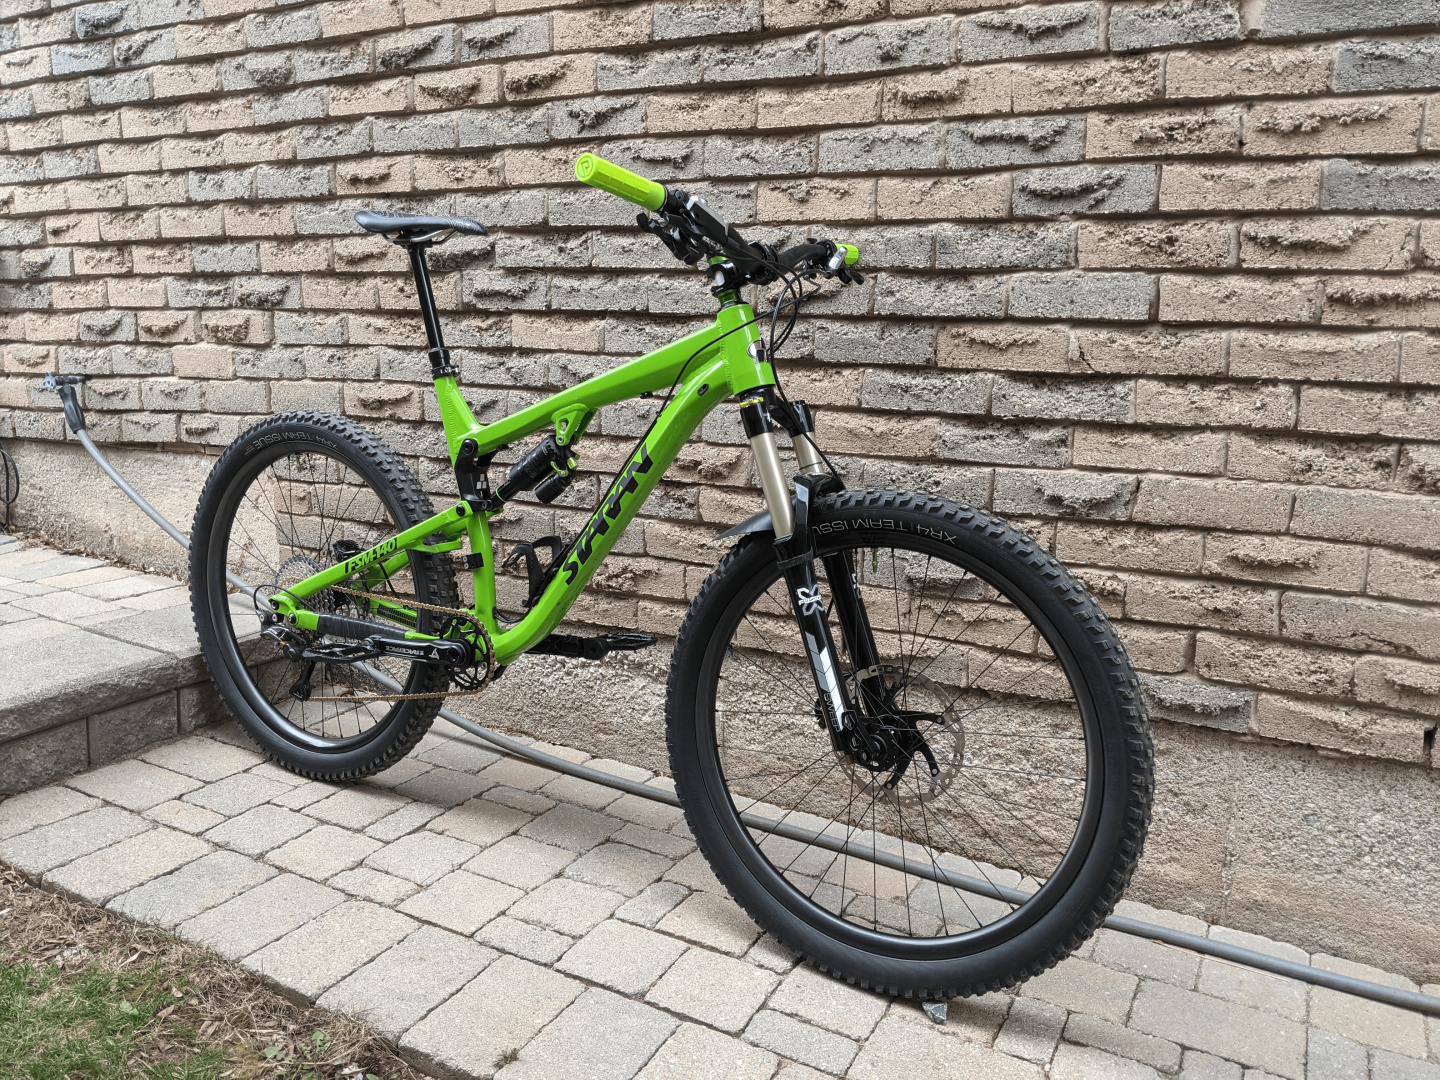 light-bicycle-am730-650b-carbon-wheelset-with-bontrager-xr4-team-issue-27.5-2.40-mtb-tires